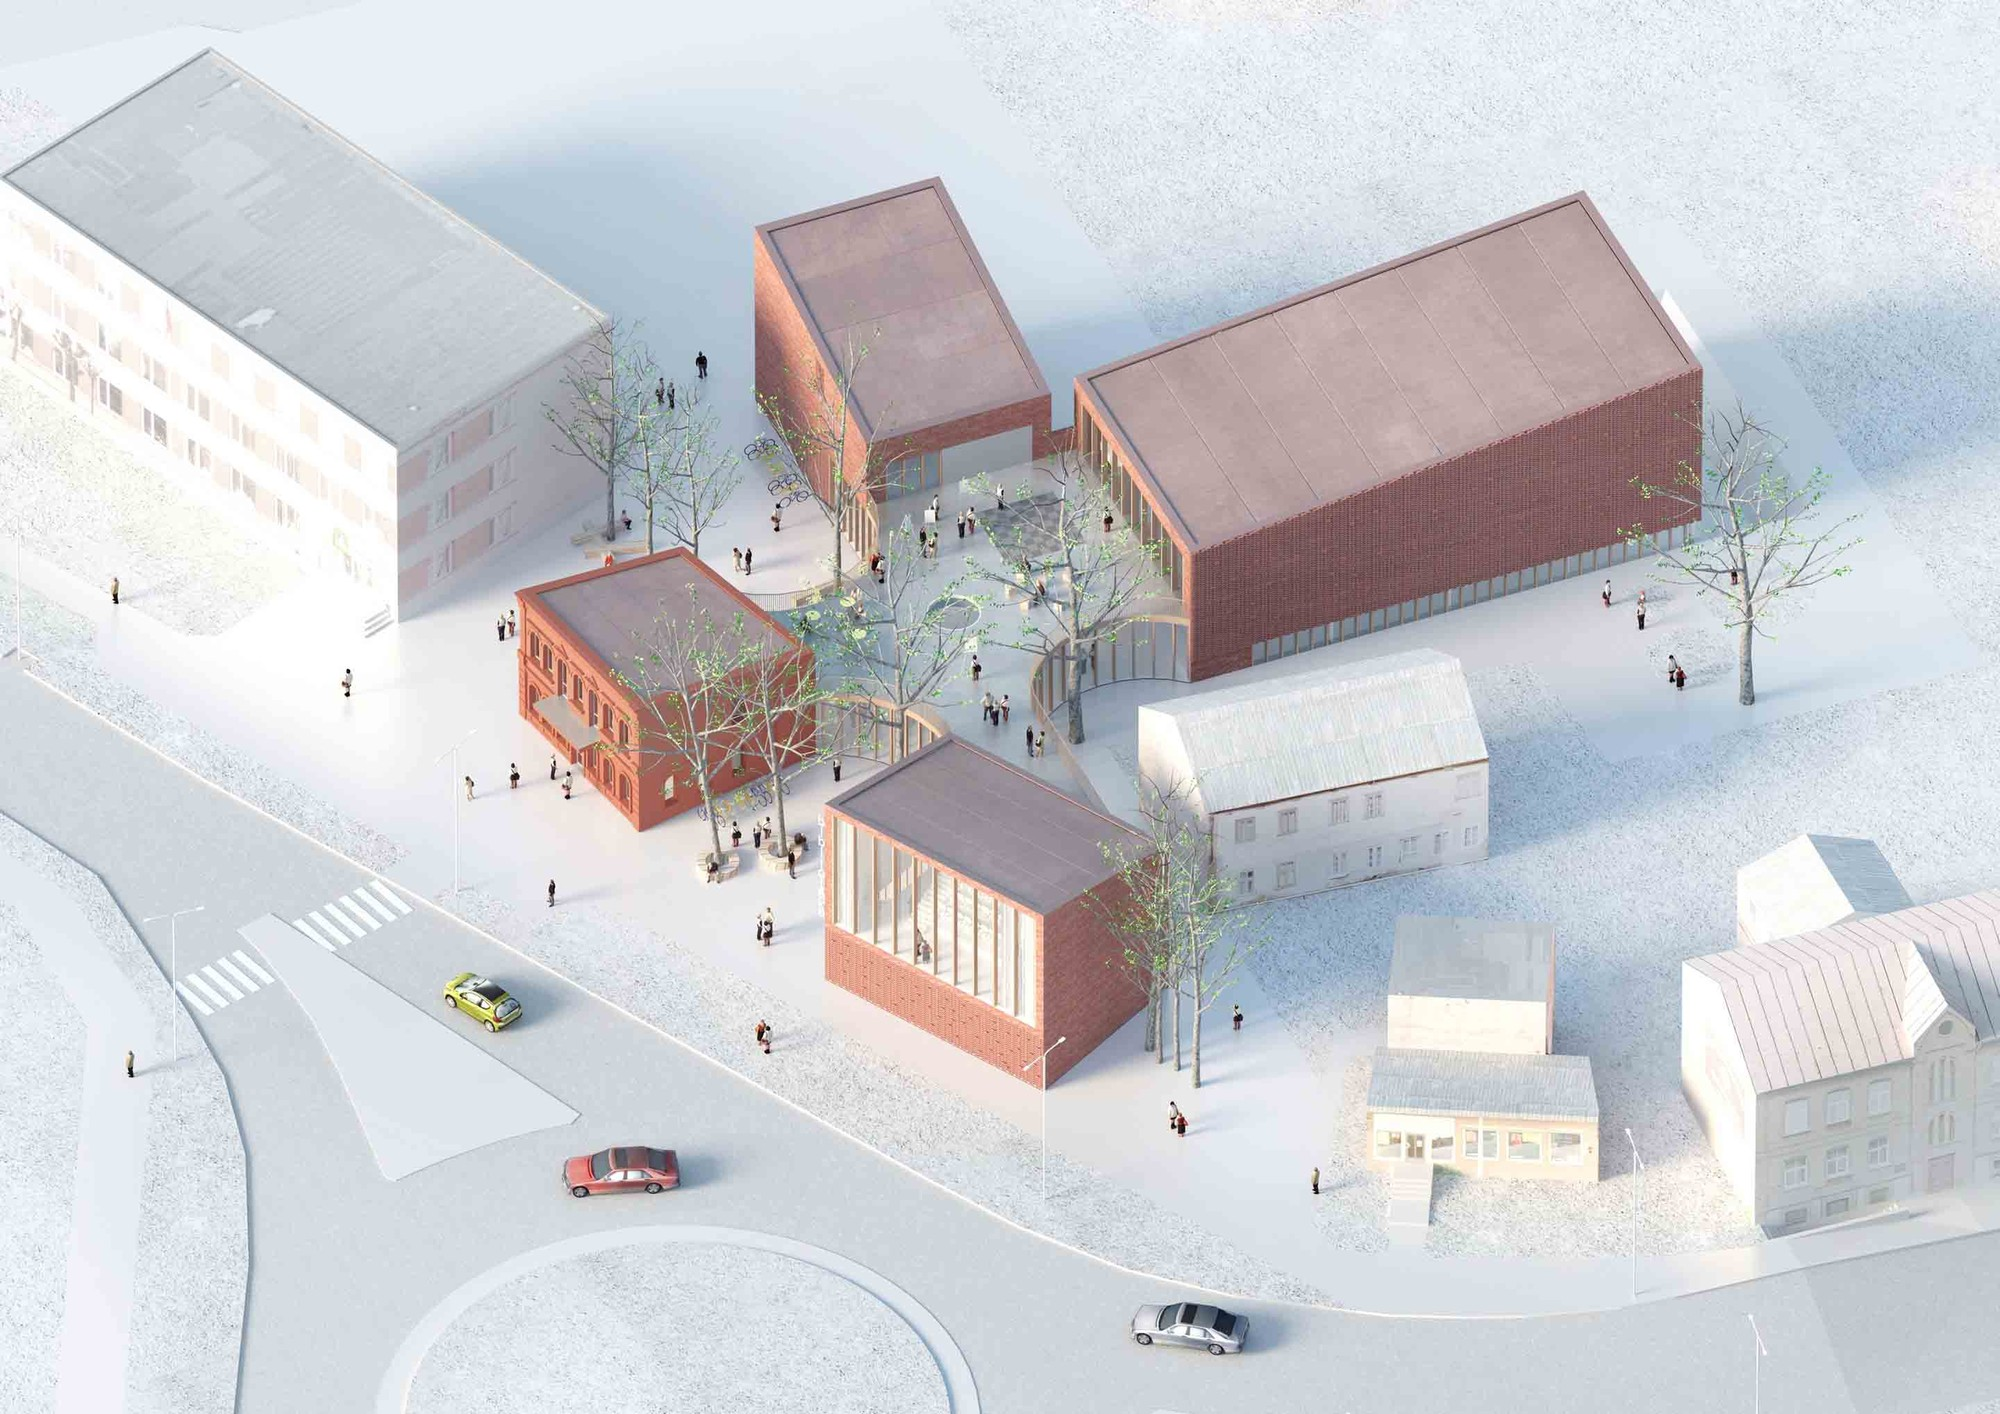 Library Building in Bauska Winning Proposal / A2SM Architects, Courtesy of A2SM Architects